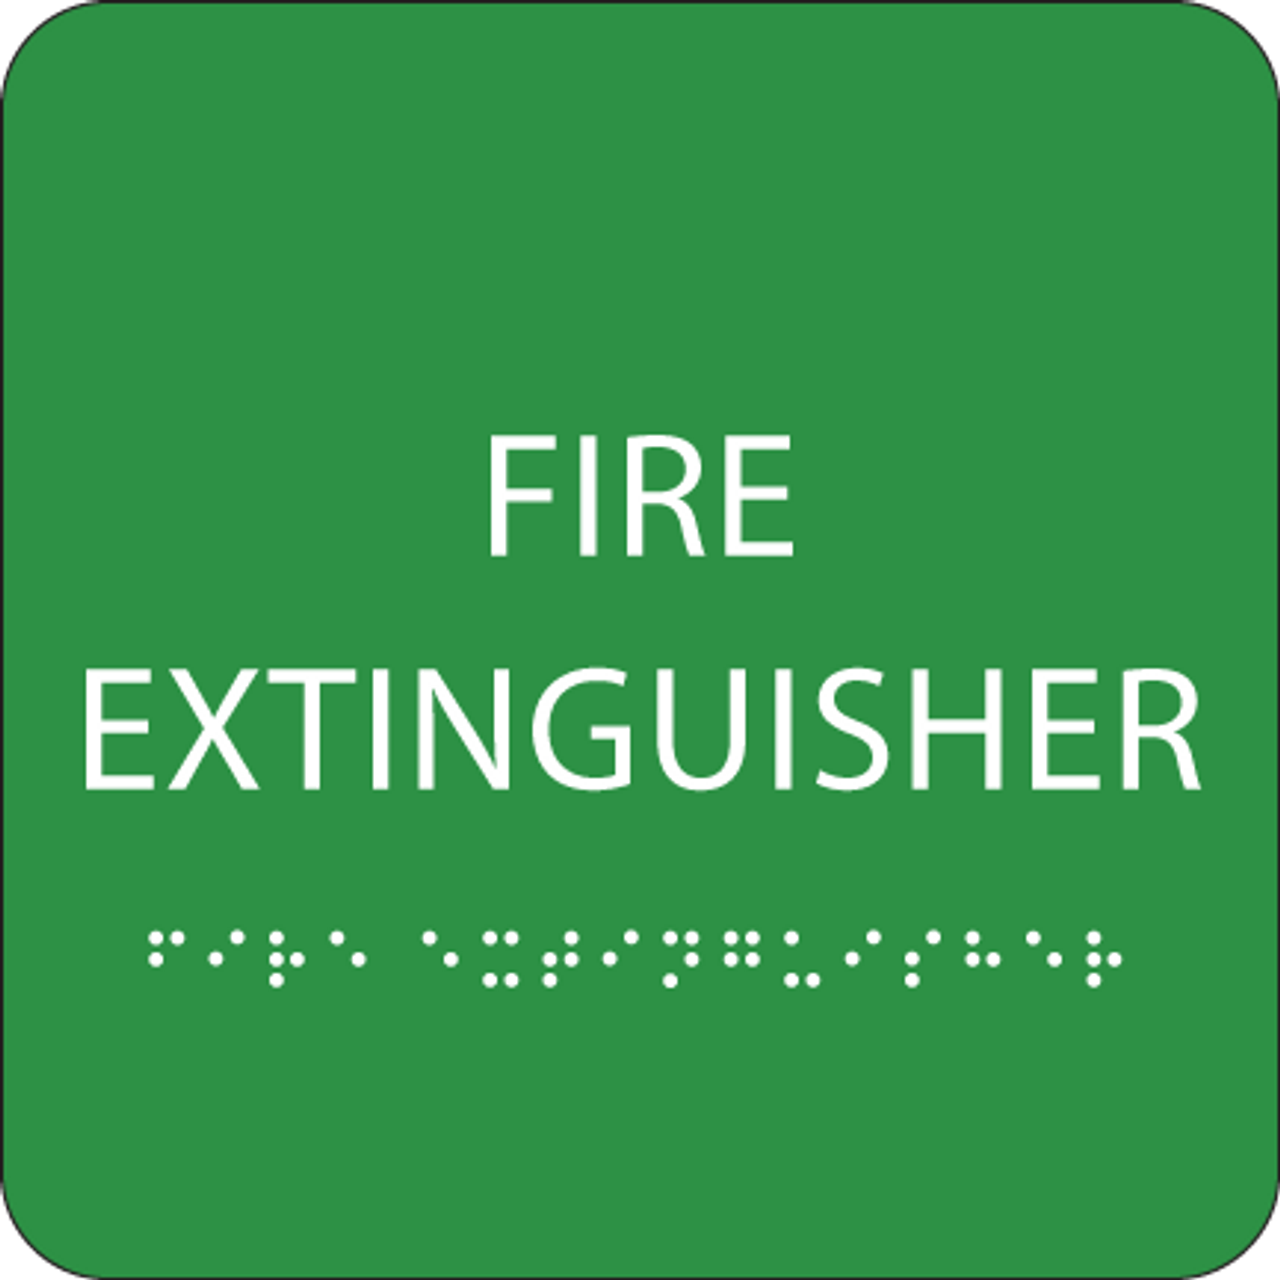 Green Fire Extinguisher Tactile Sign